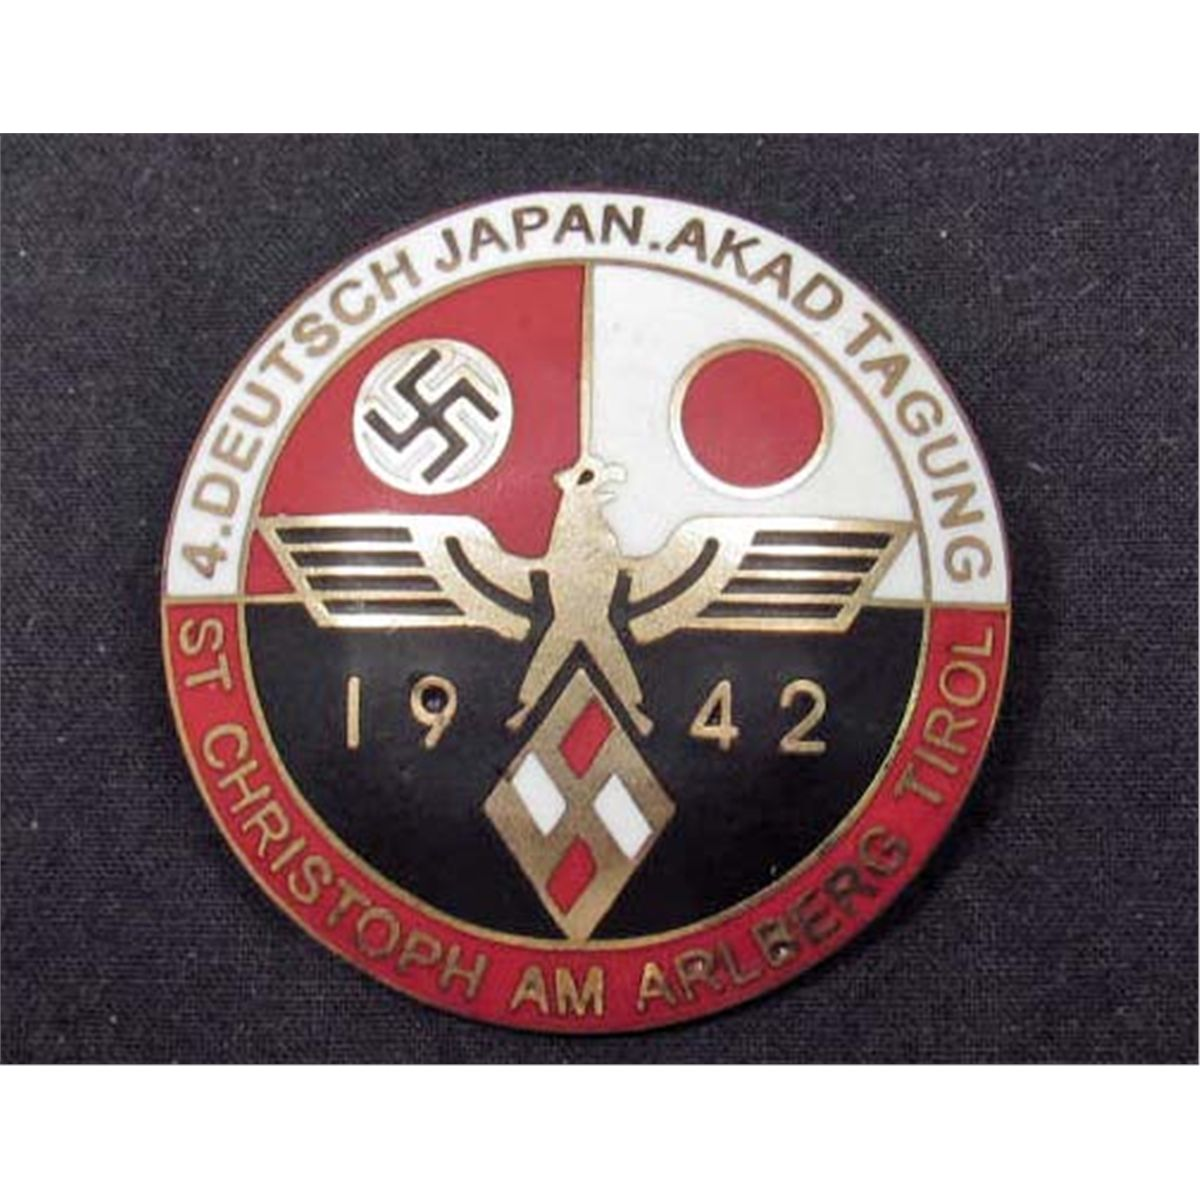 german japanese alliance In 2014-2018 the world marks the 100th anniversary of world war i, 400 magazine articles from 1914-1918,the alliance with mexico and japan proposed by germany.